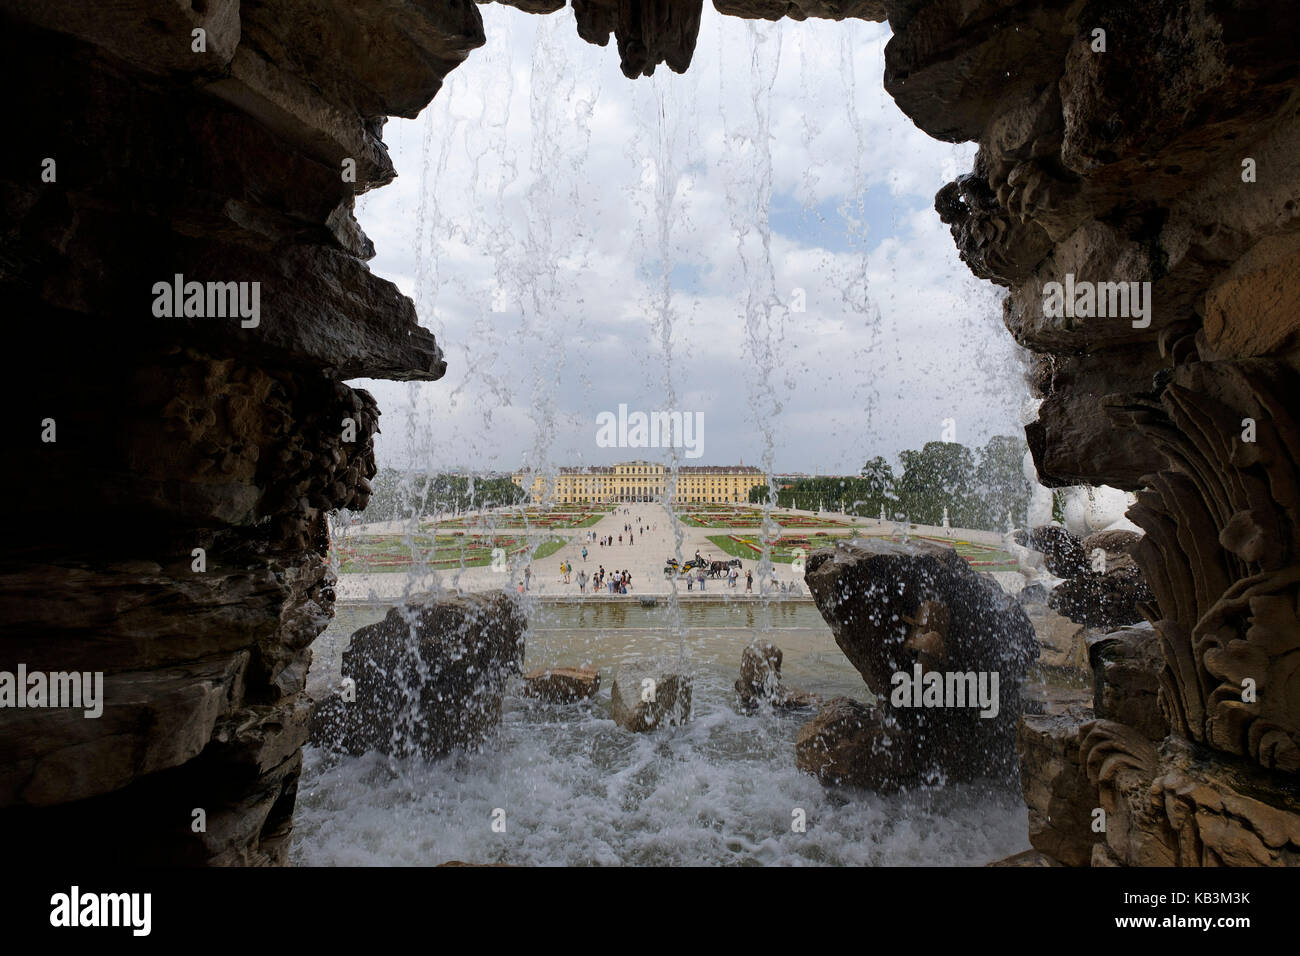 Schönbrunn Palace in Vienna, Austria, Europe - Stock Image